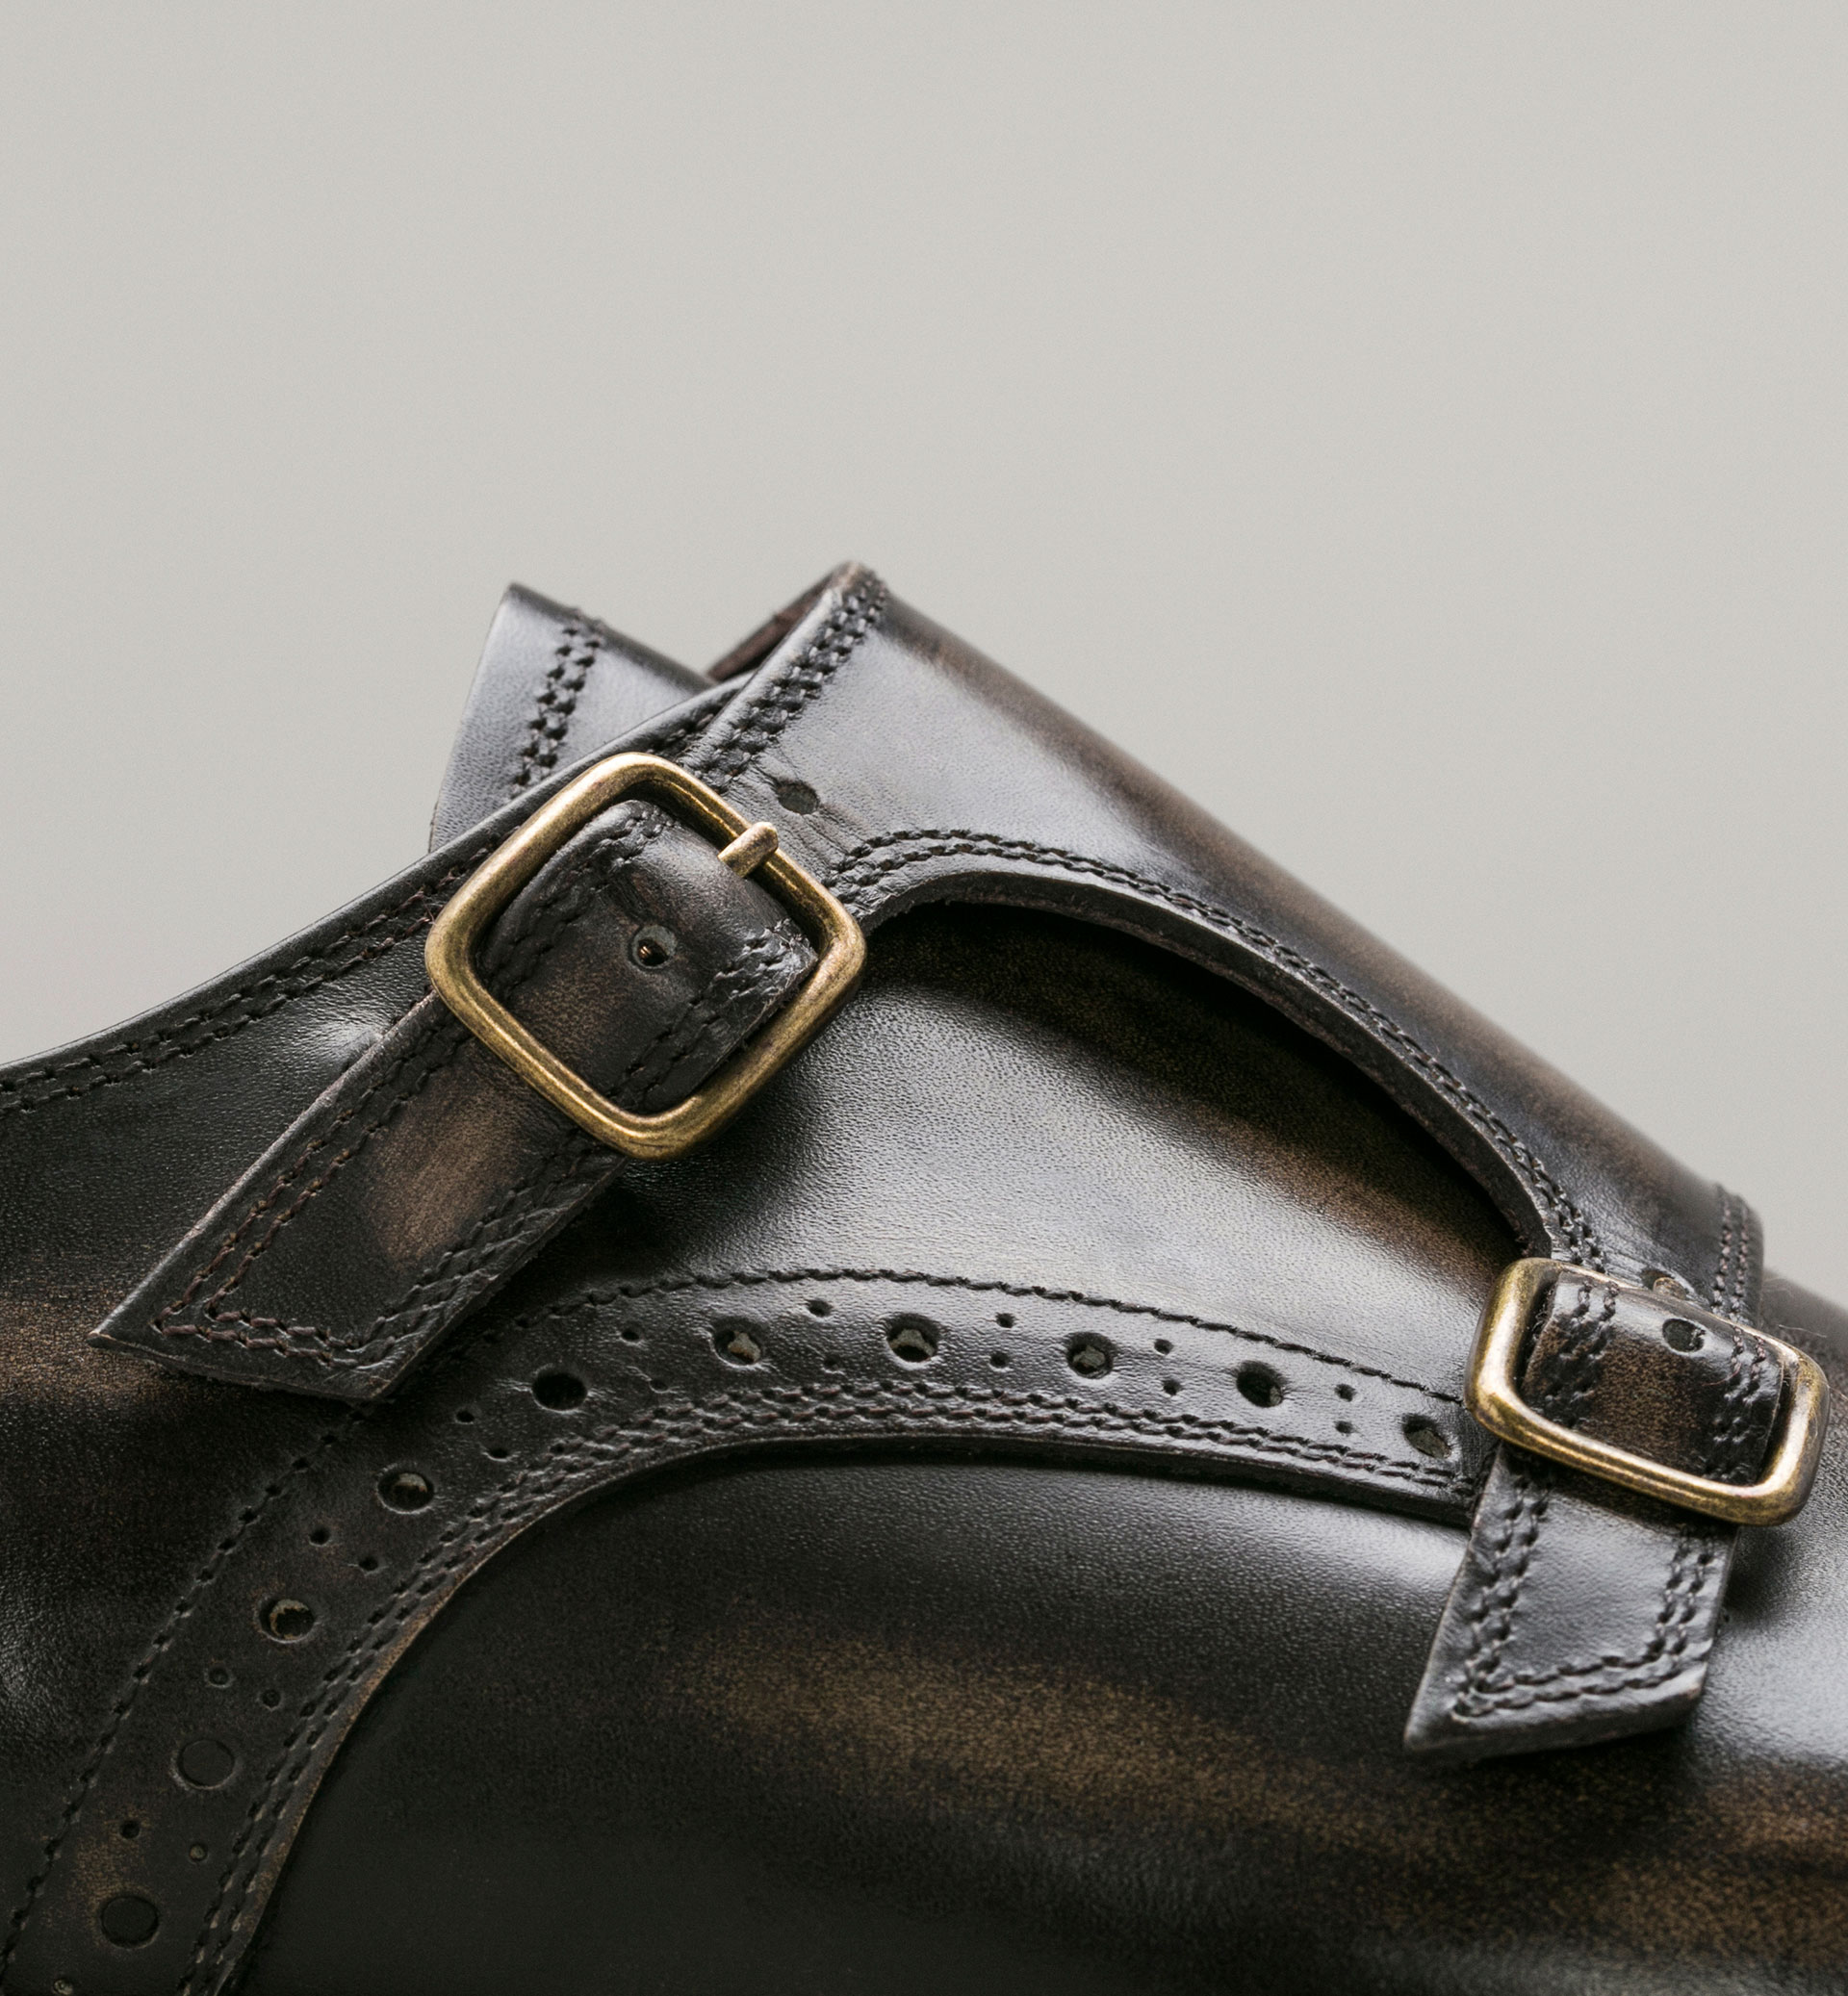 PERSONAL TAILORING SHOES WITH BUCKLES AND BROGUEING